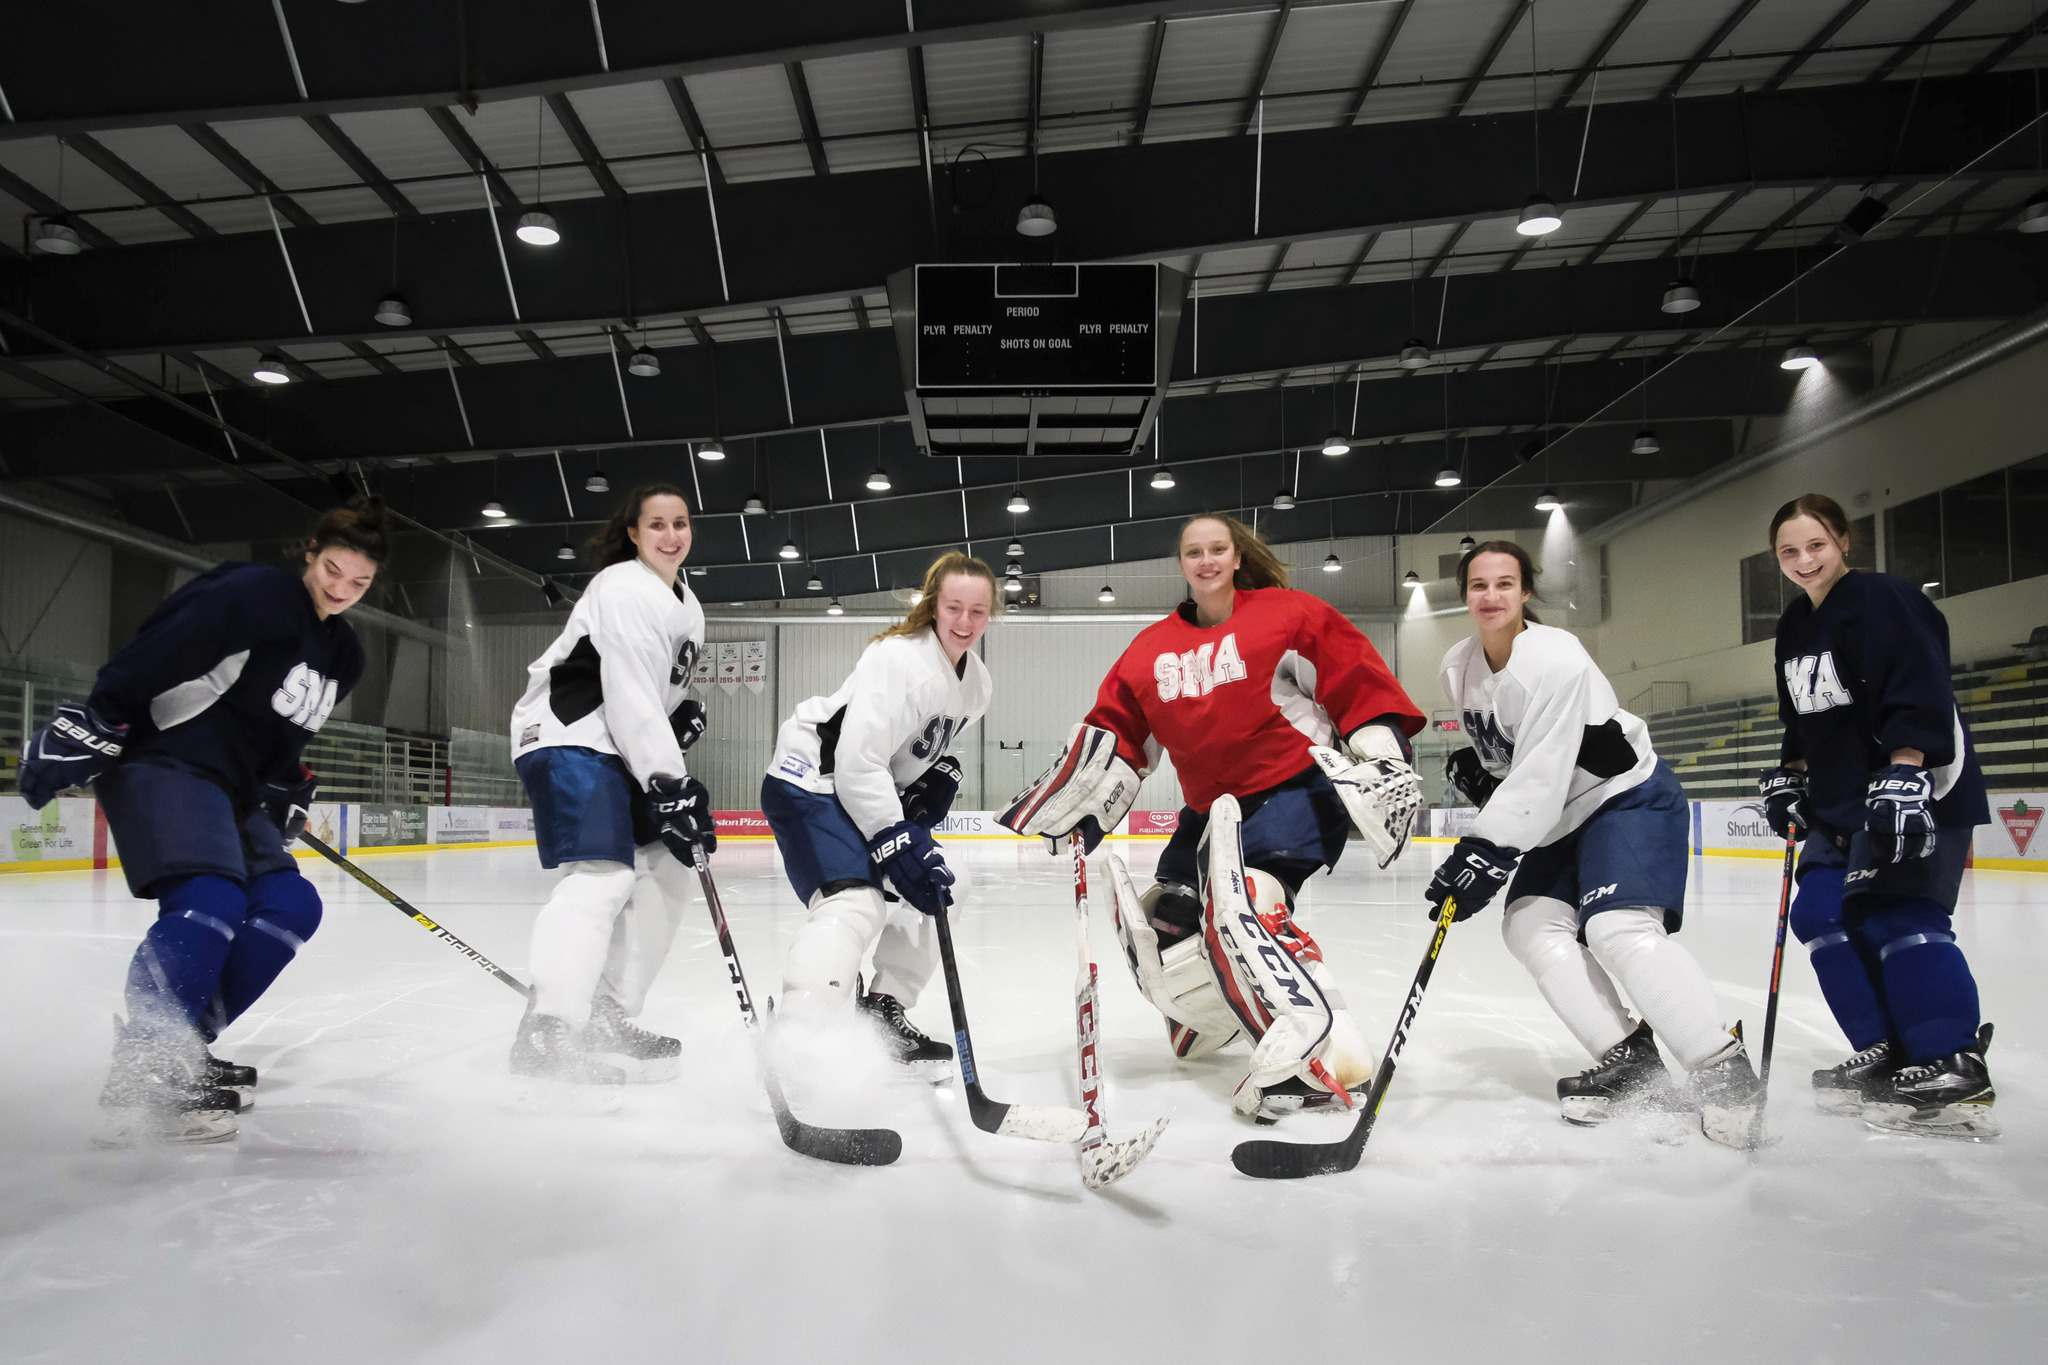 Aimee Patrick (from left), Kate Bumstead, Gabi Dawyduk, Meagan Relf, Lainie Nichols and Chloe Oleksiak are all graduating with scholarships to play hockey at the university level next season. (Daniel Crump / Winnipeg Free Press)